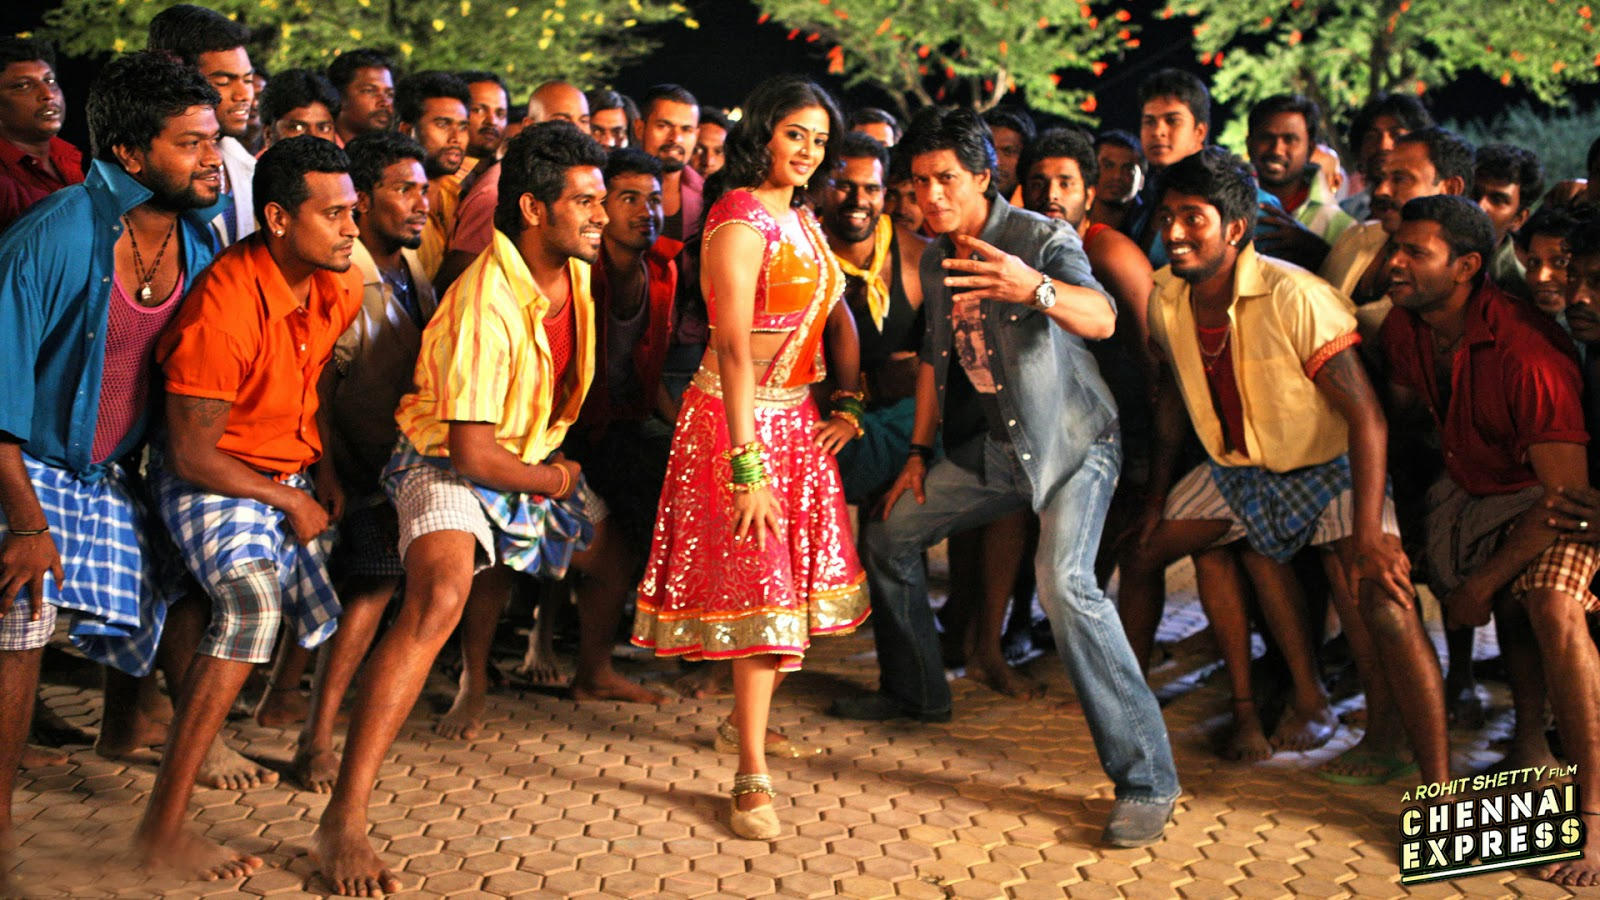 Chennai express hd wallpapers for 1234 get on the dance floor hd video